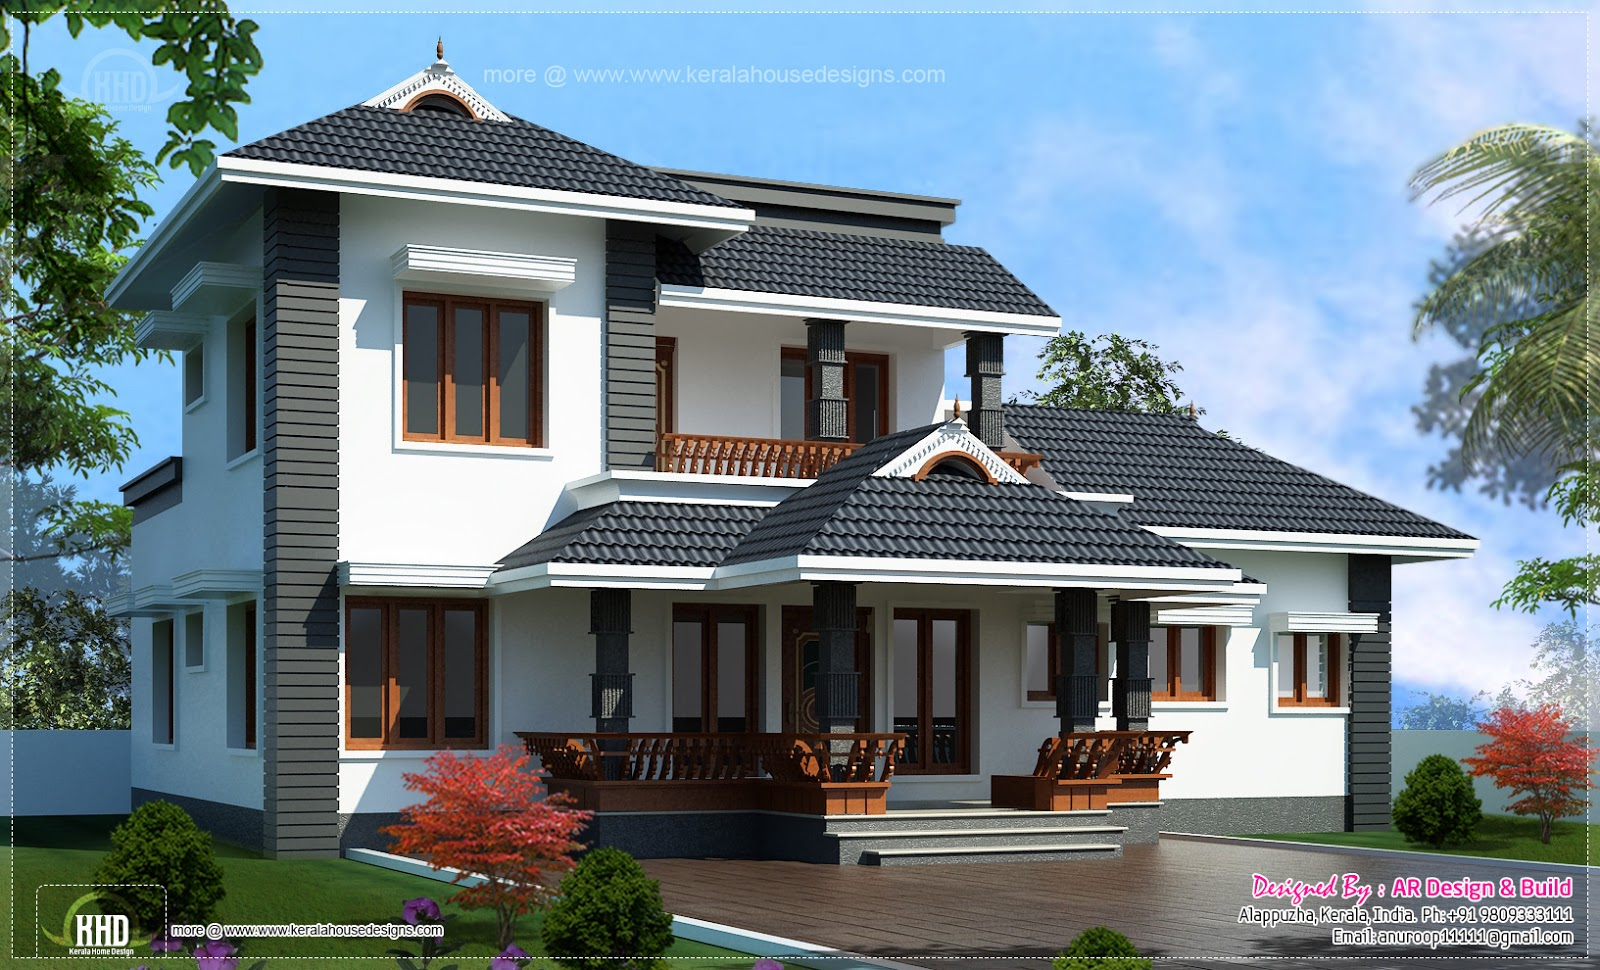 April 2013 kerala home design and floor plans for Latest house designs in kerala